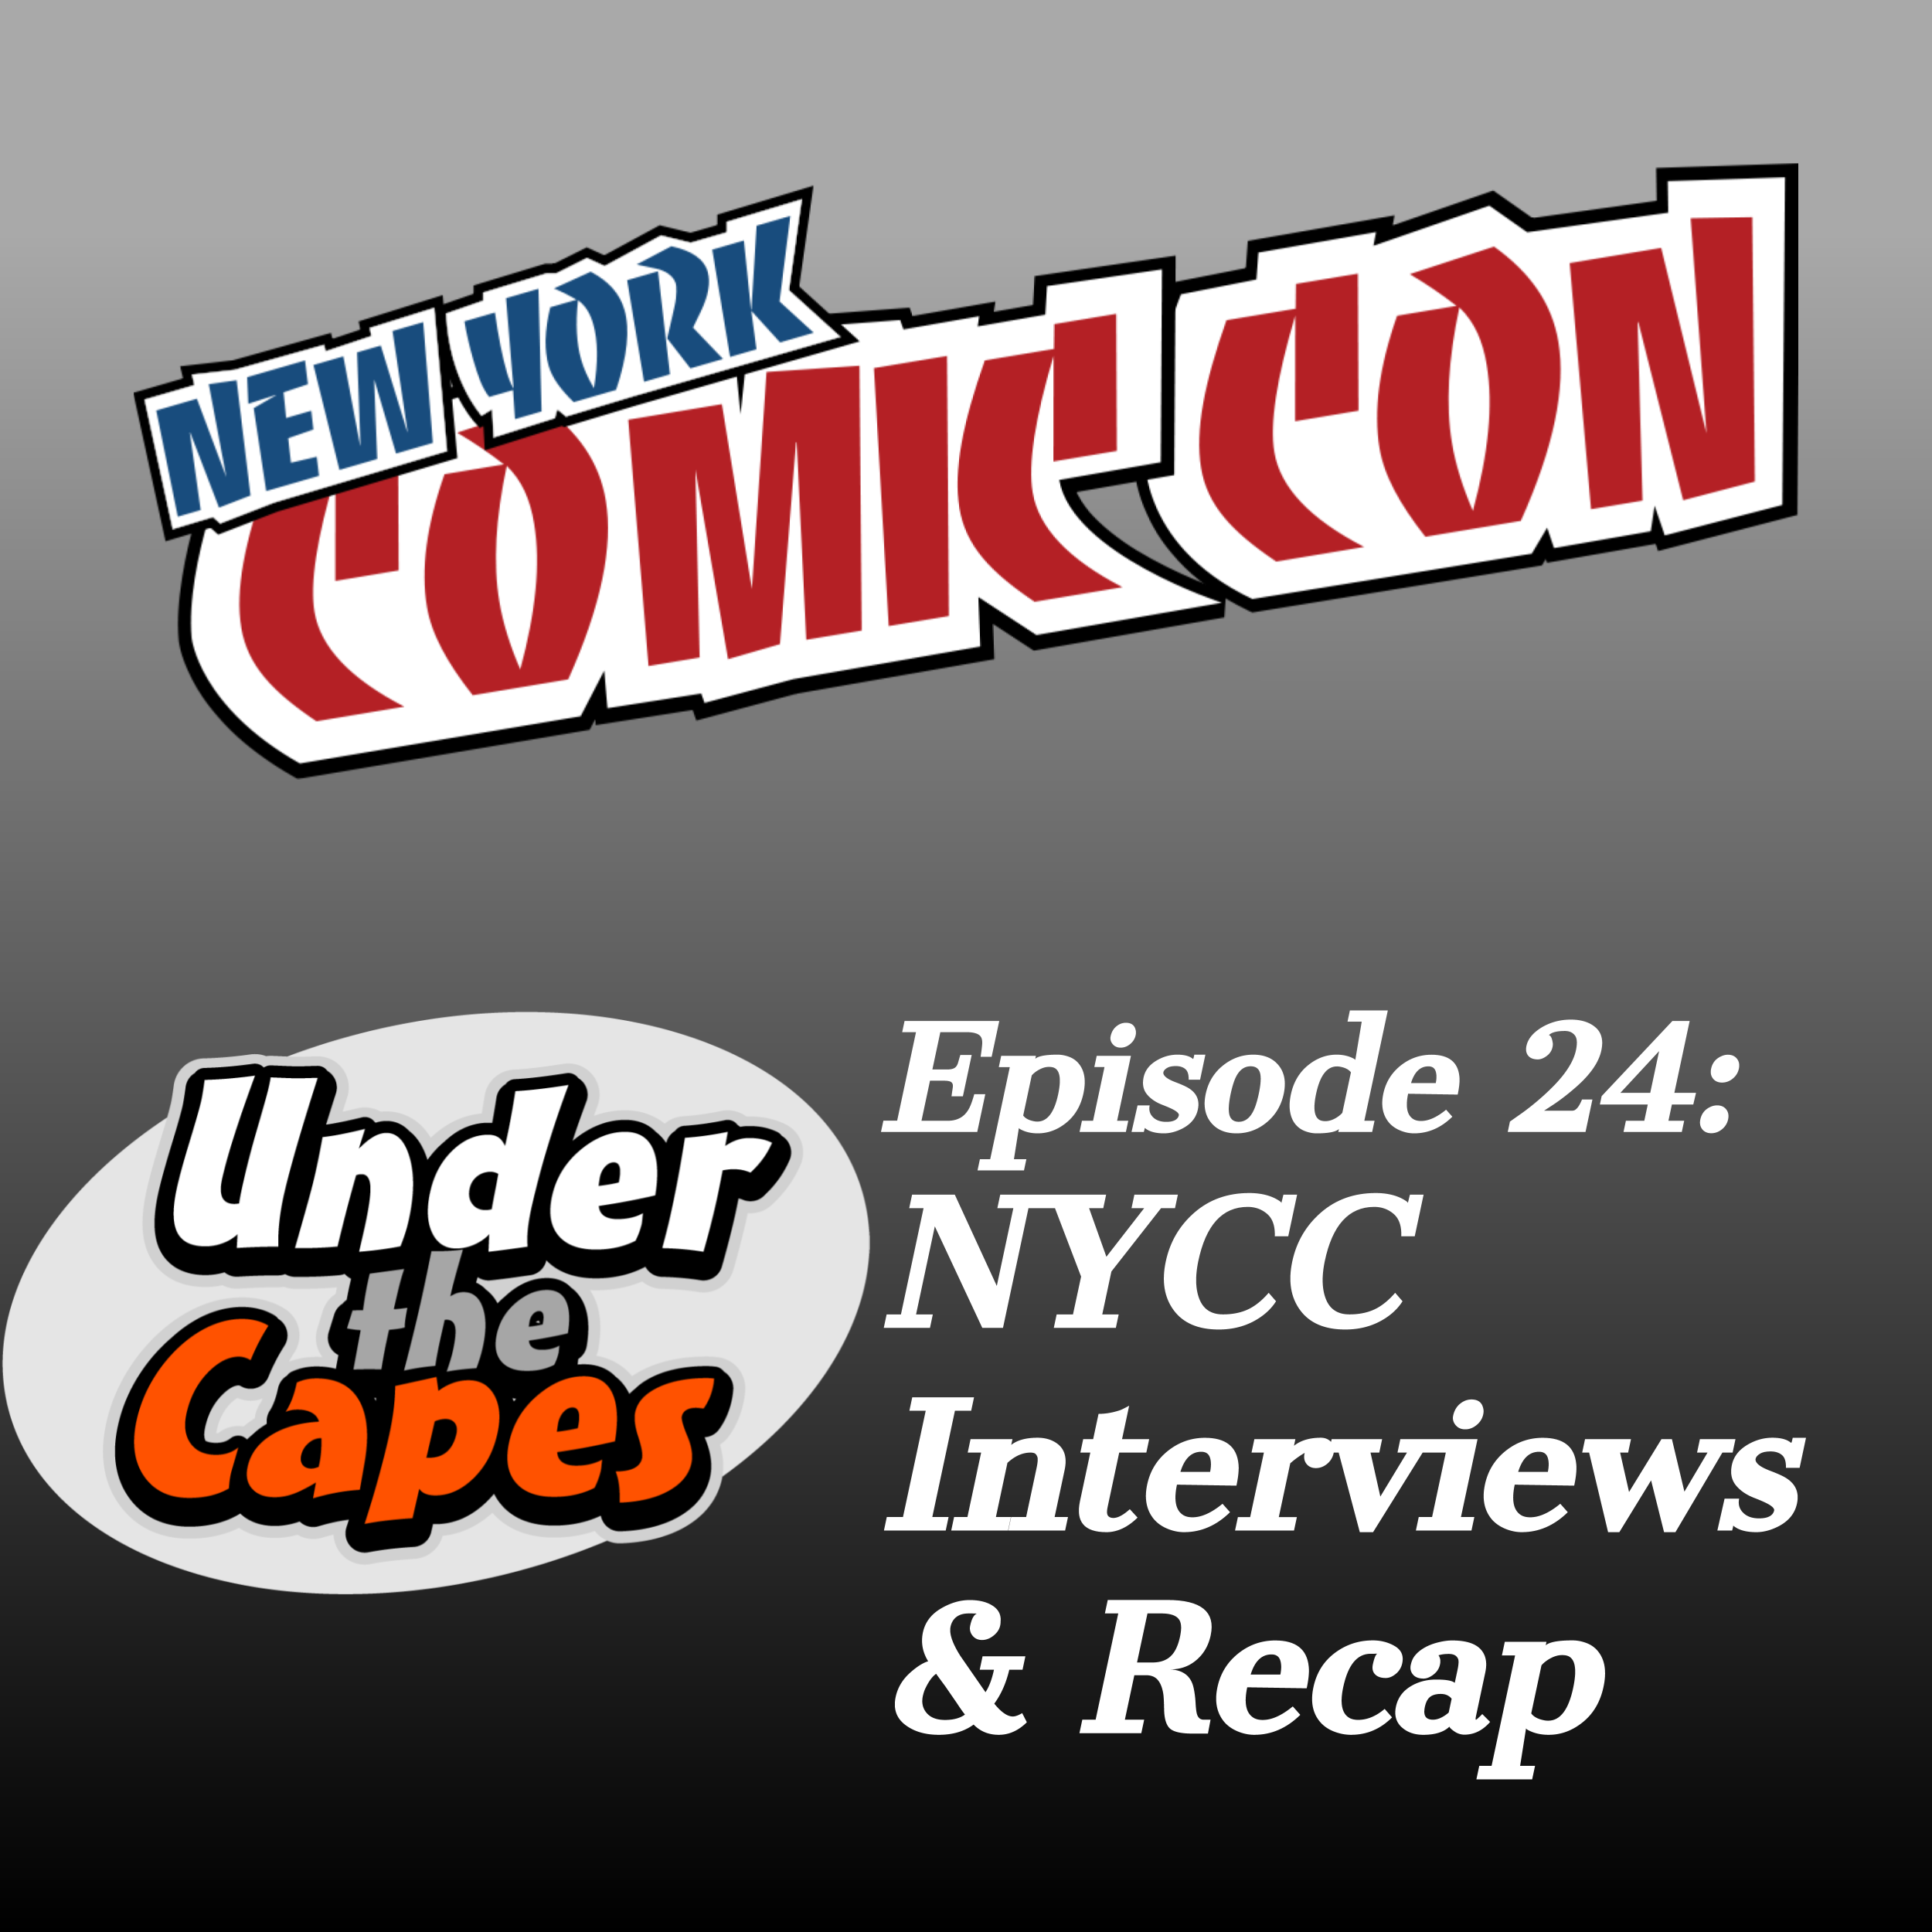 Episode 24: New York Comic Con Interviews and Recap